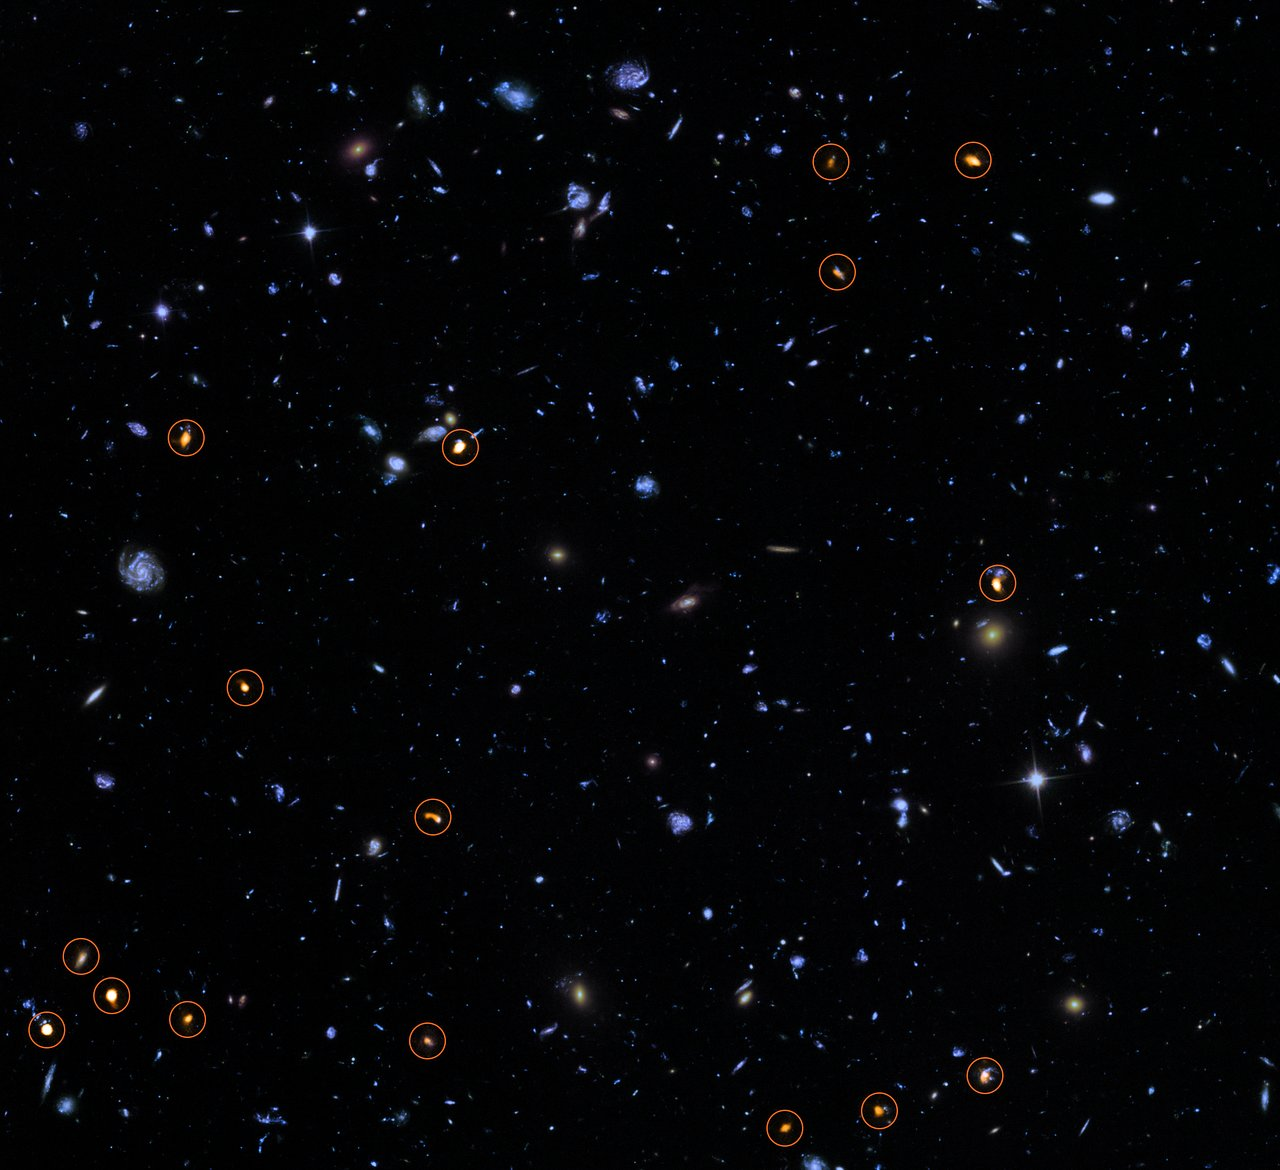 This image combines a background picture taken by the NASA/ESA Hubble Space Telescope (blue/green) with a new very deep ALMA view of this field (orange, marked with circles). All the objects that ALMA sees appear to be massive star-forming galaxies  . - Image Credit:ALMA (ESO/NAOJ/NRAO)/NASA/ESA/J. Dunlop et al.and S. Beckwith (   STScI   ) and the HUDF Team.